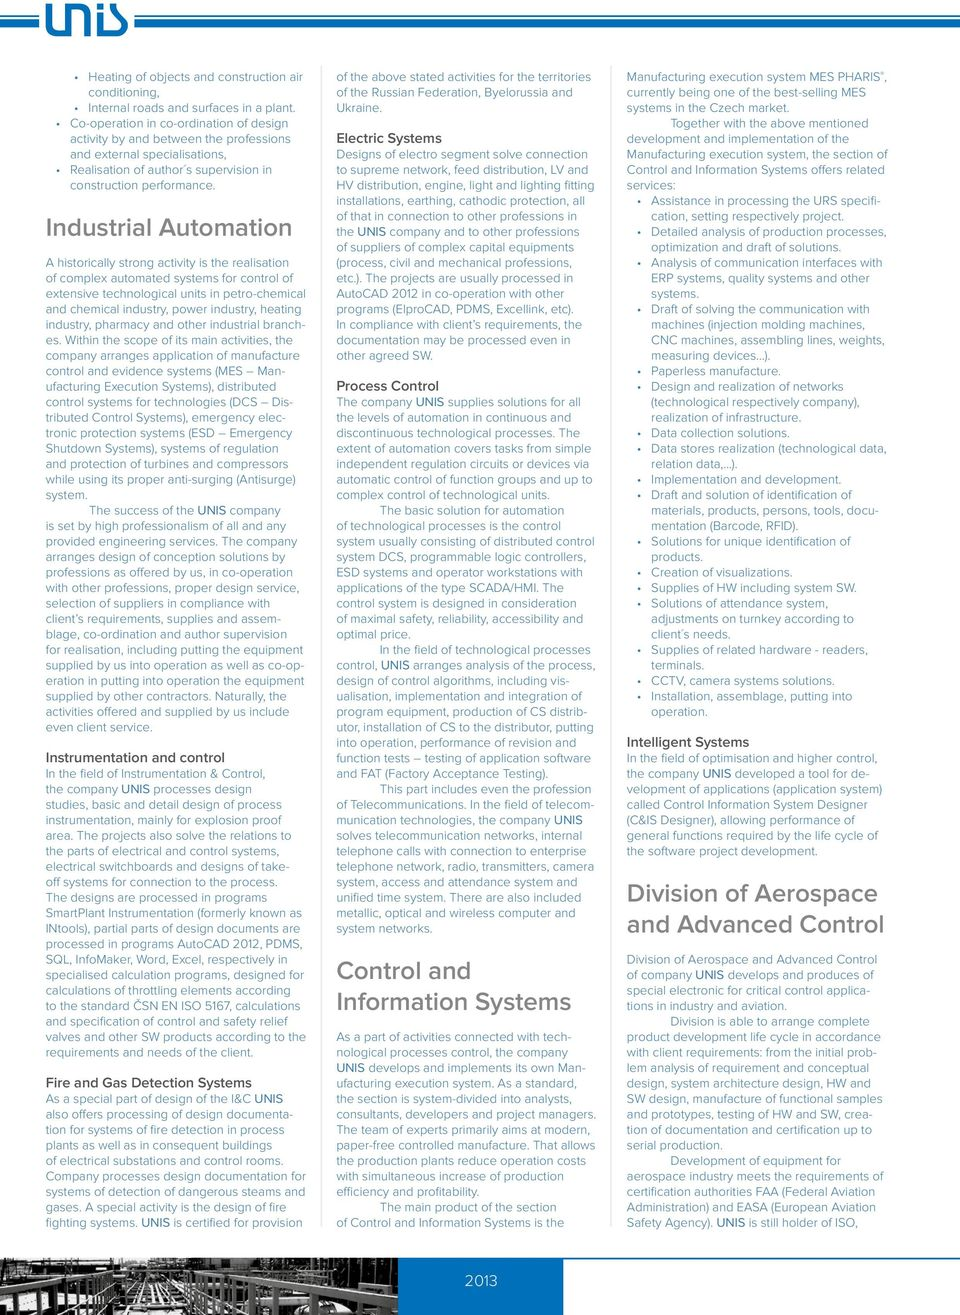 Industrial Automation A historically strong activity is the realisation of complex automated systems for control of extensive technological units in petro-chemical and chemical industry, power